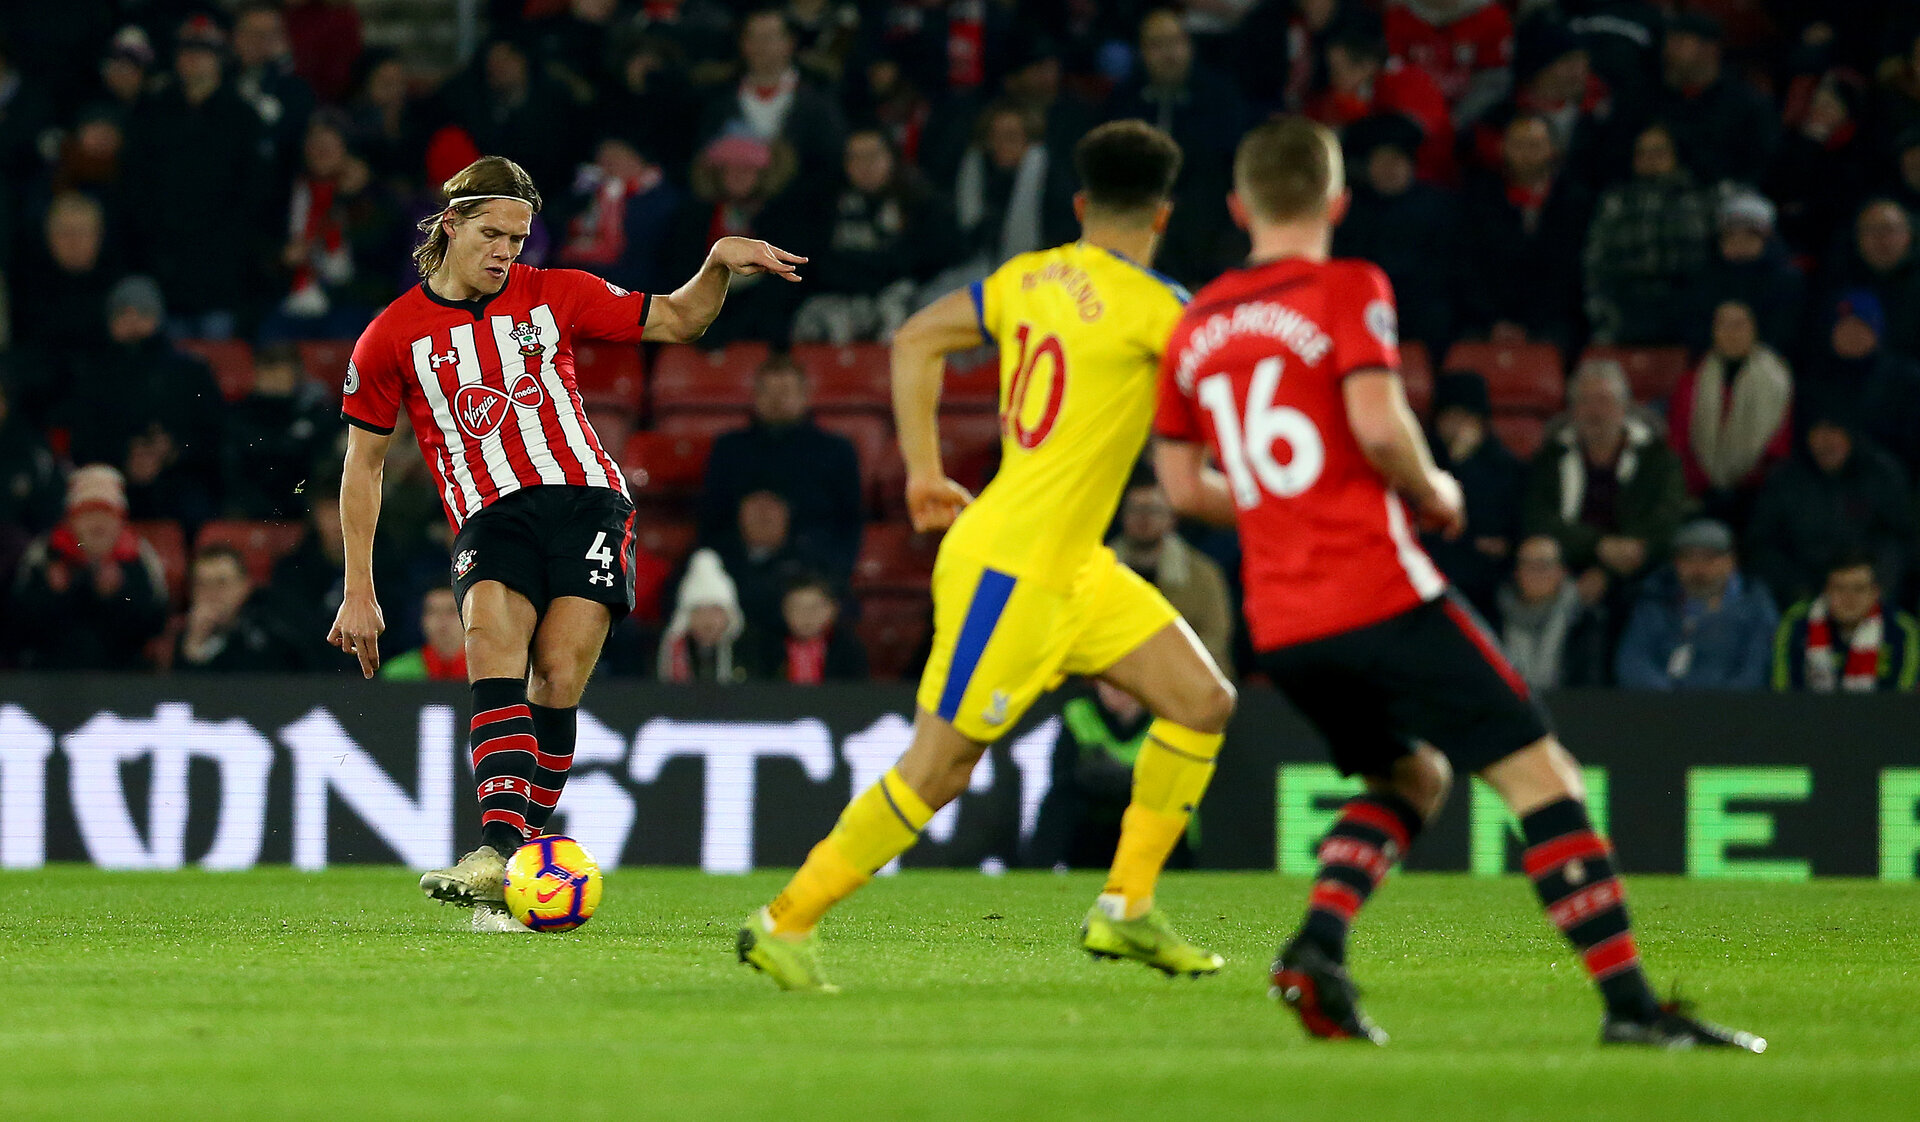 SOUTHAMPTON, ENGLAND - JANUARY 30: Jannik Vestergaard of Southampton during the Premier League match between Southampton FC and Crystal Palace at St Mary's Stadium on January 30, 2019 in Southampton, United Kingdom. (Photo by Matt Watson/Southampton FC via Getty Images)